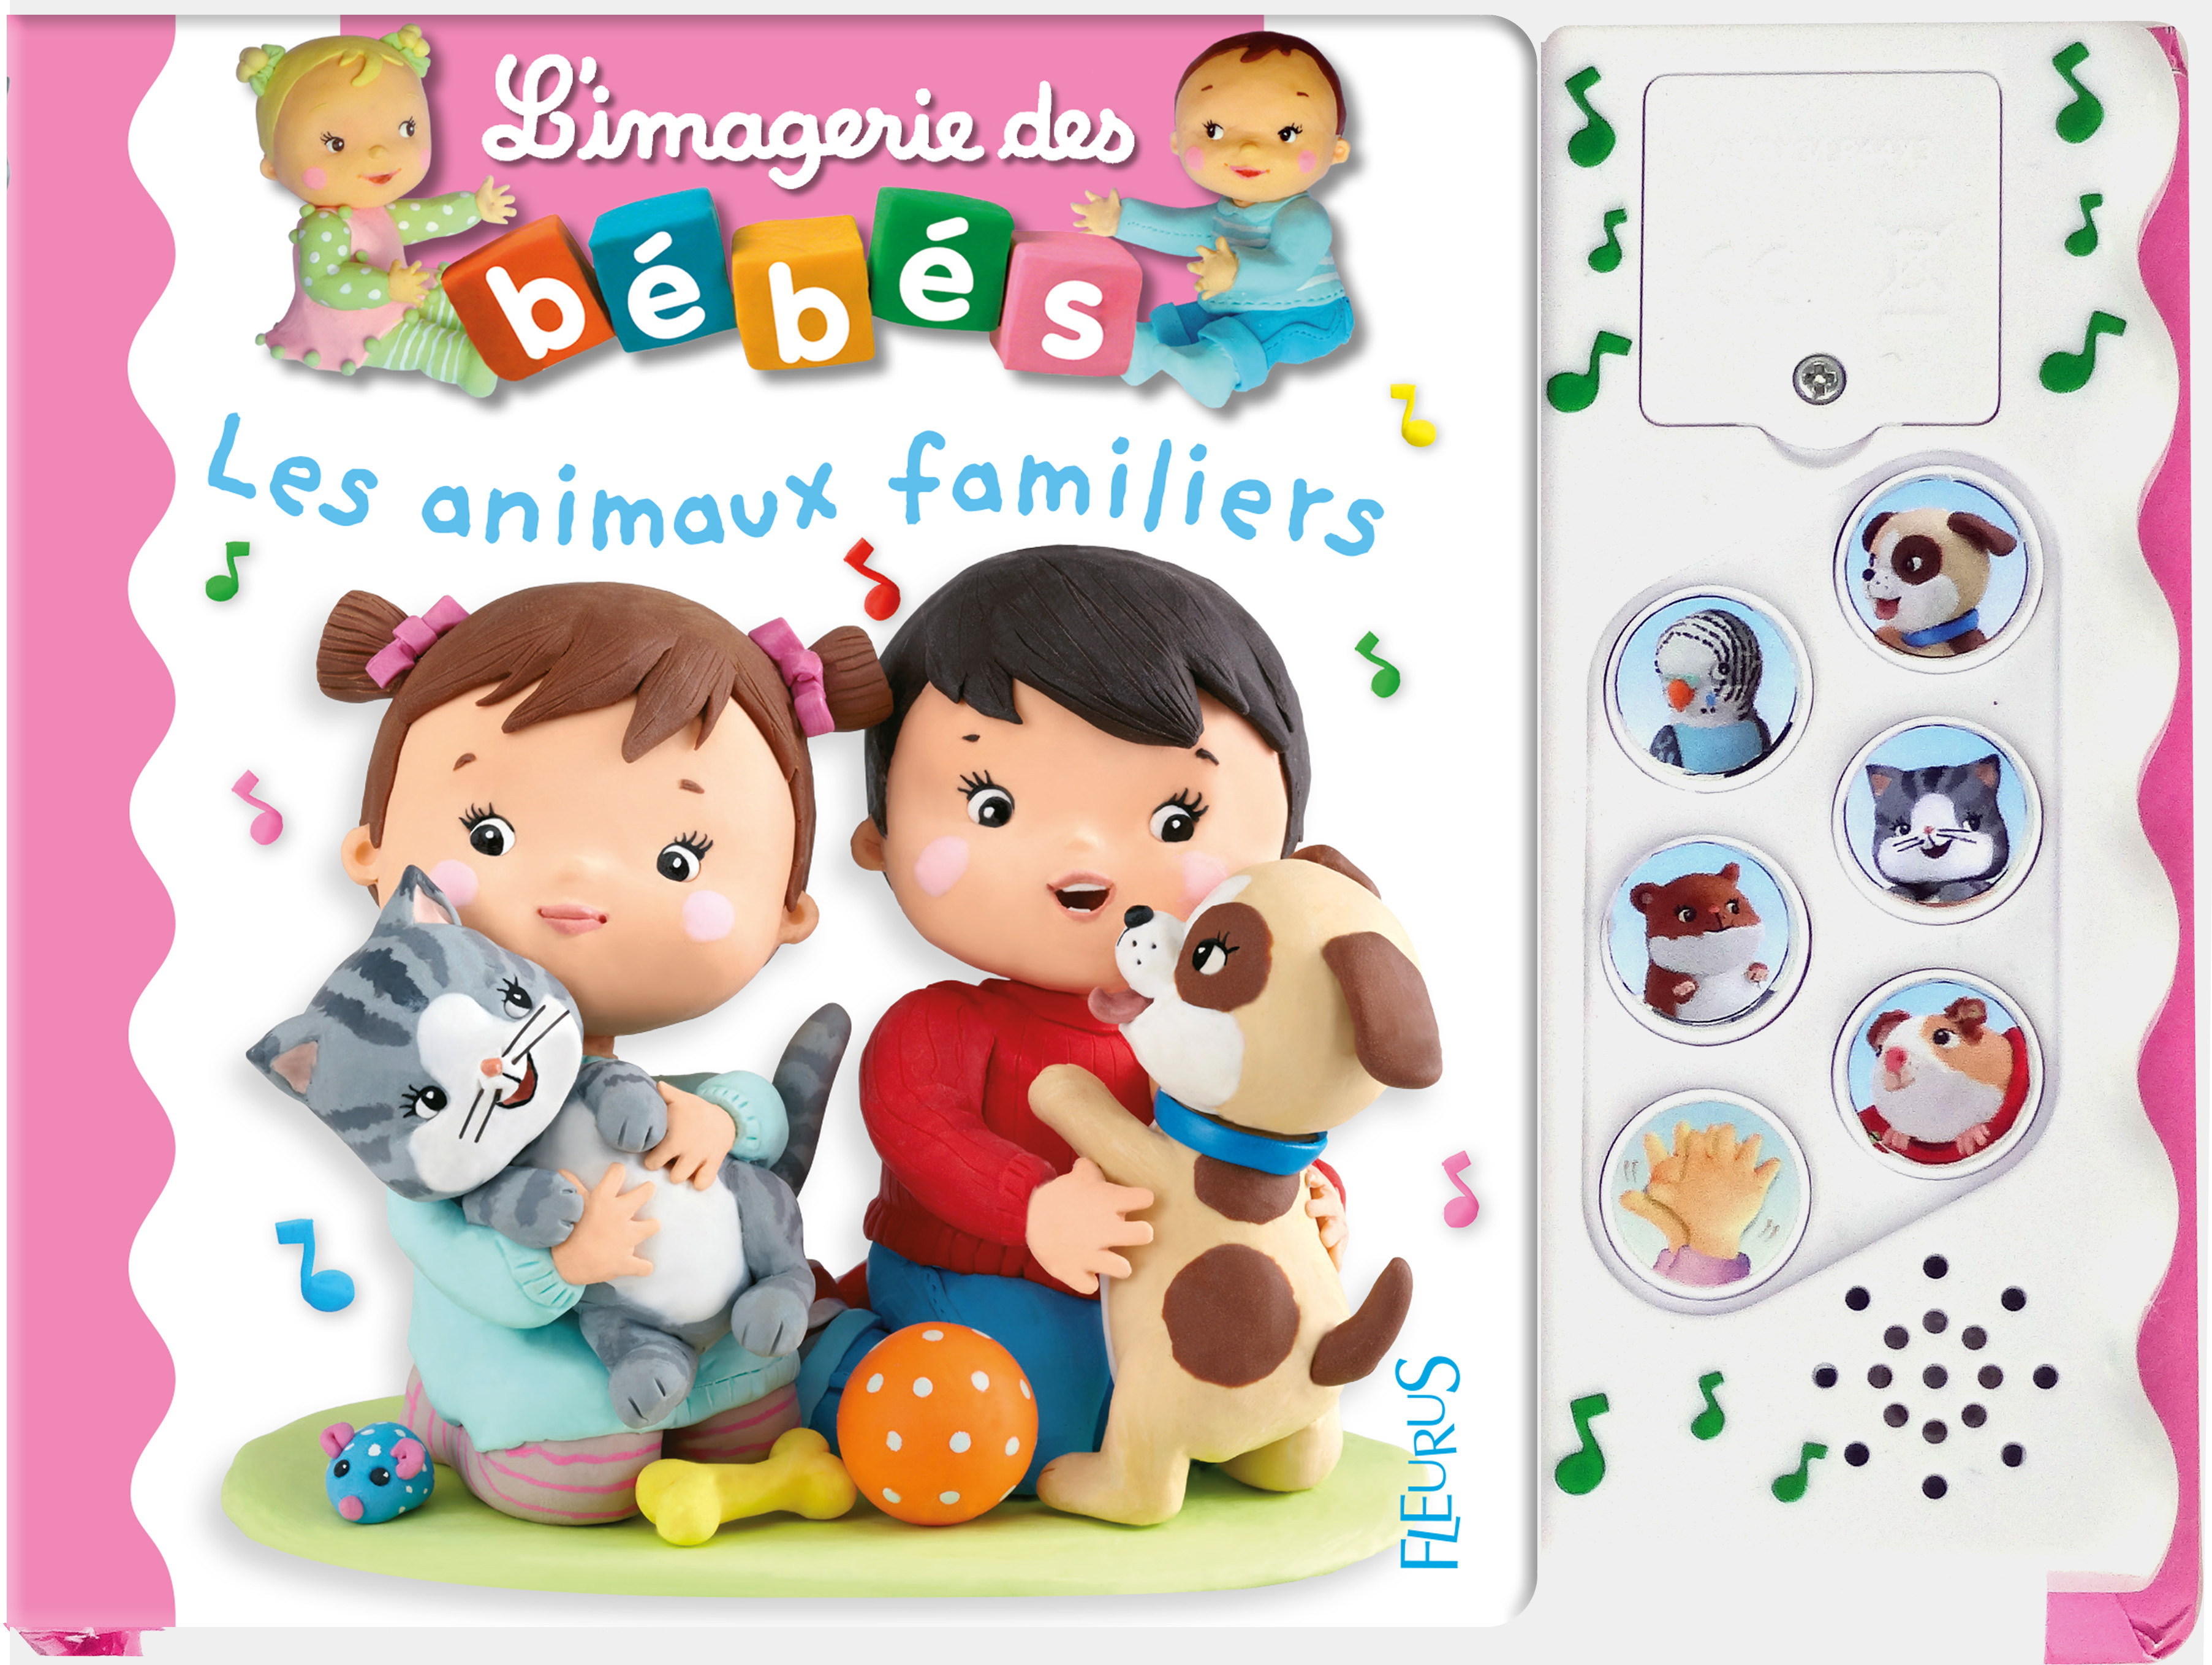 IMAGERIE DES BEBES SONORE ANIMAUX FAMILIERS